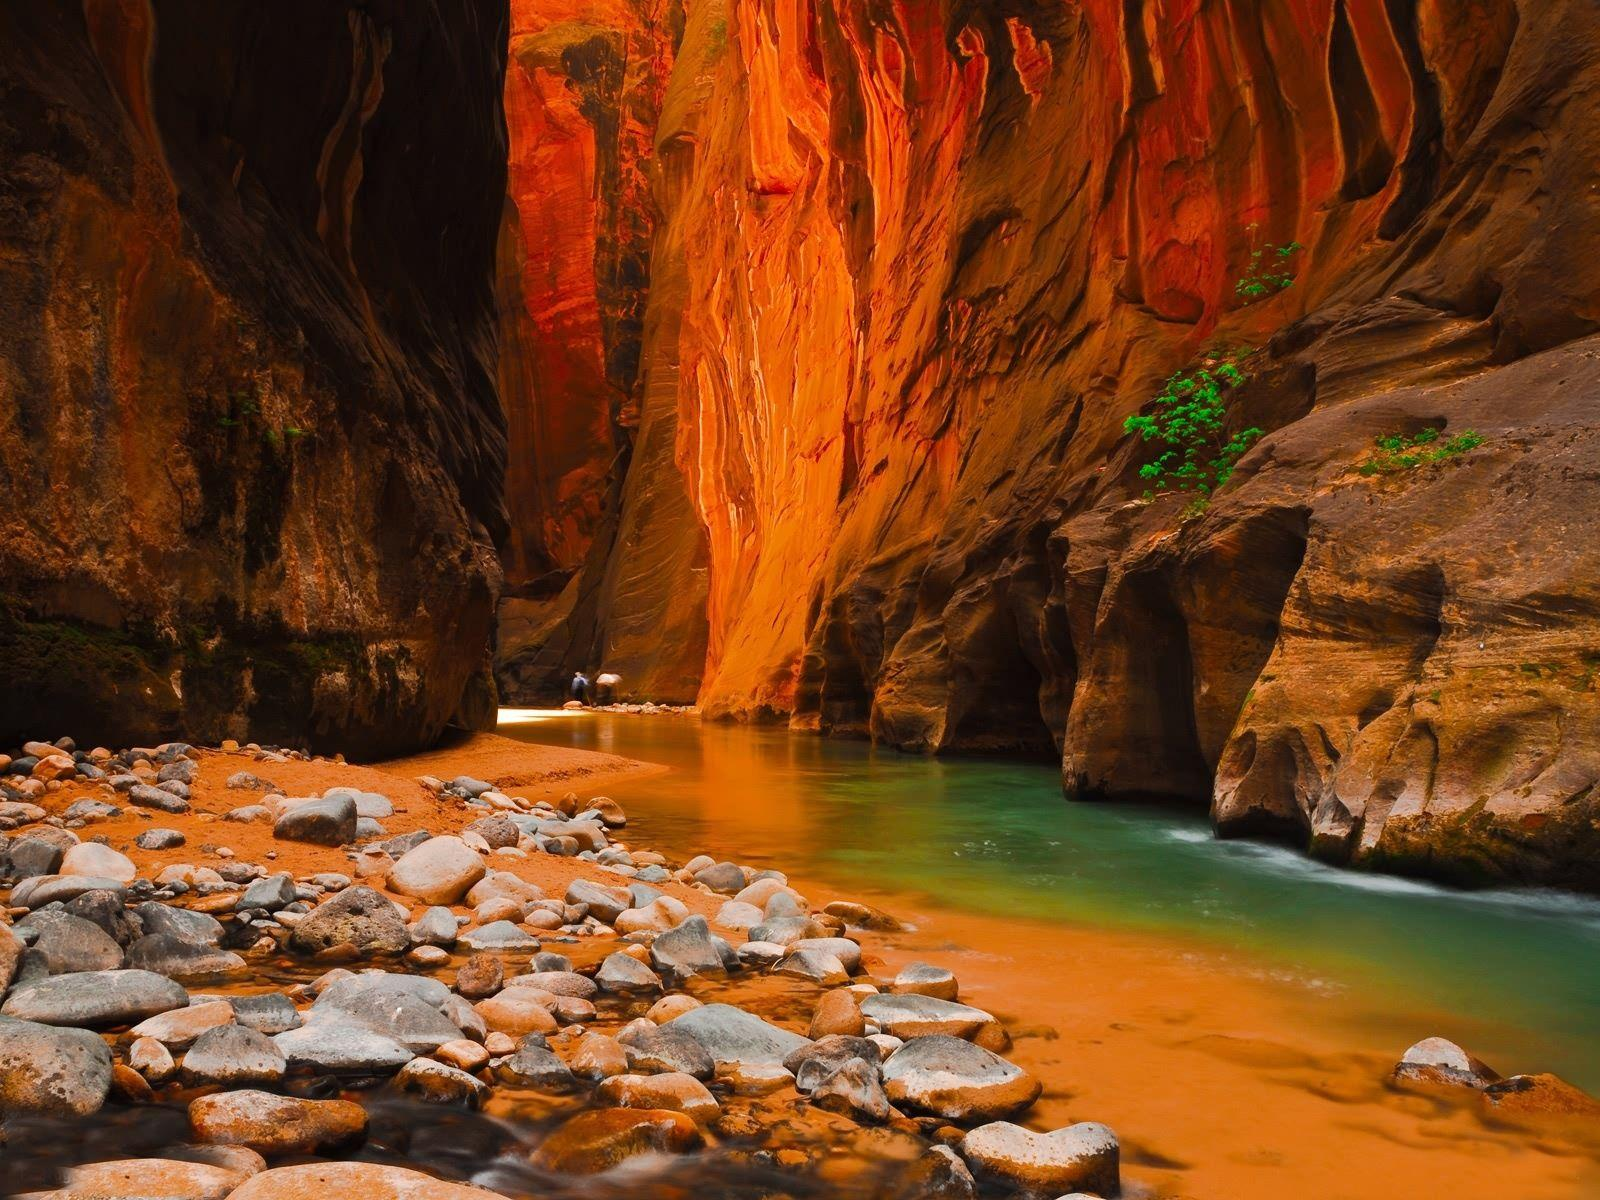 Zion National Park Emerald Pools - wallpaper.